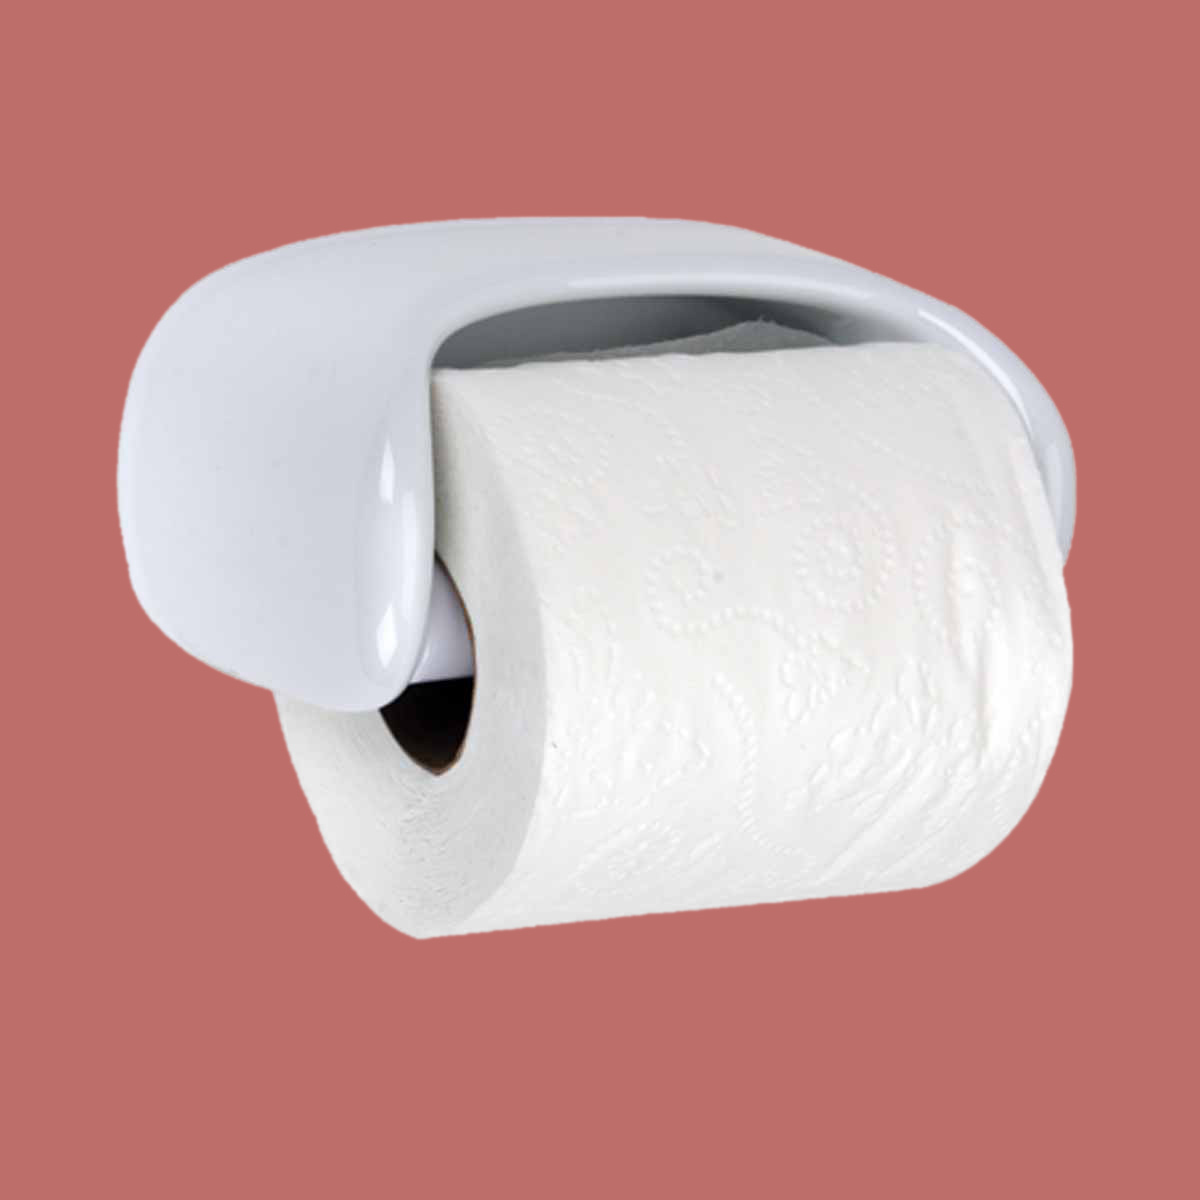 toilet paper holder white ceramic porcelain tissue holder